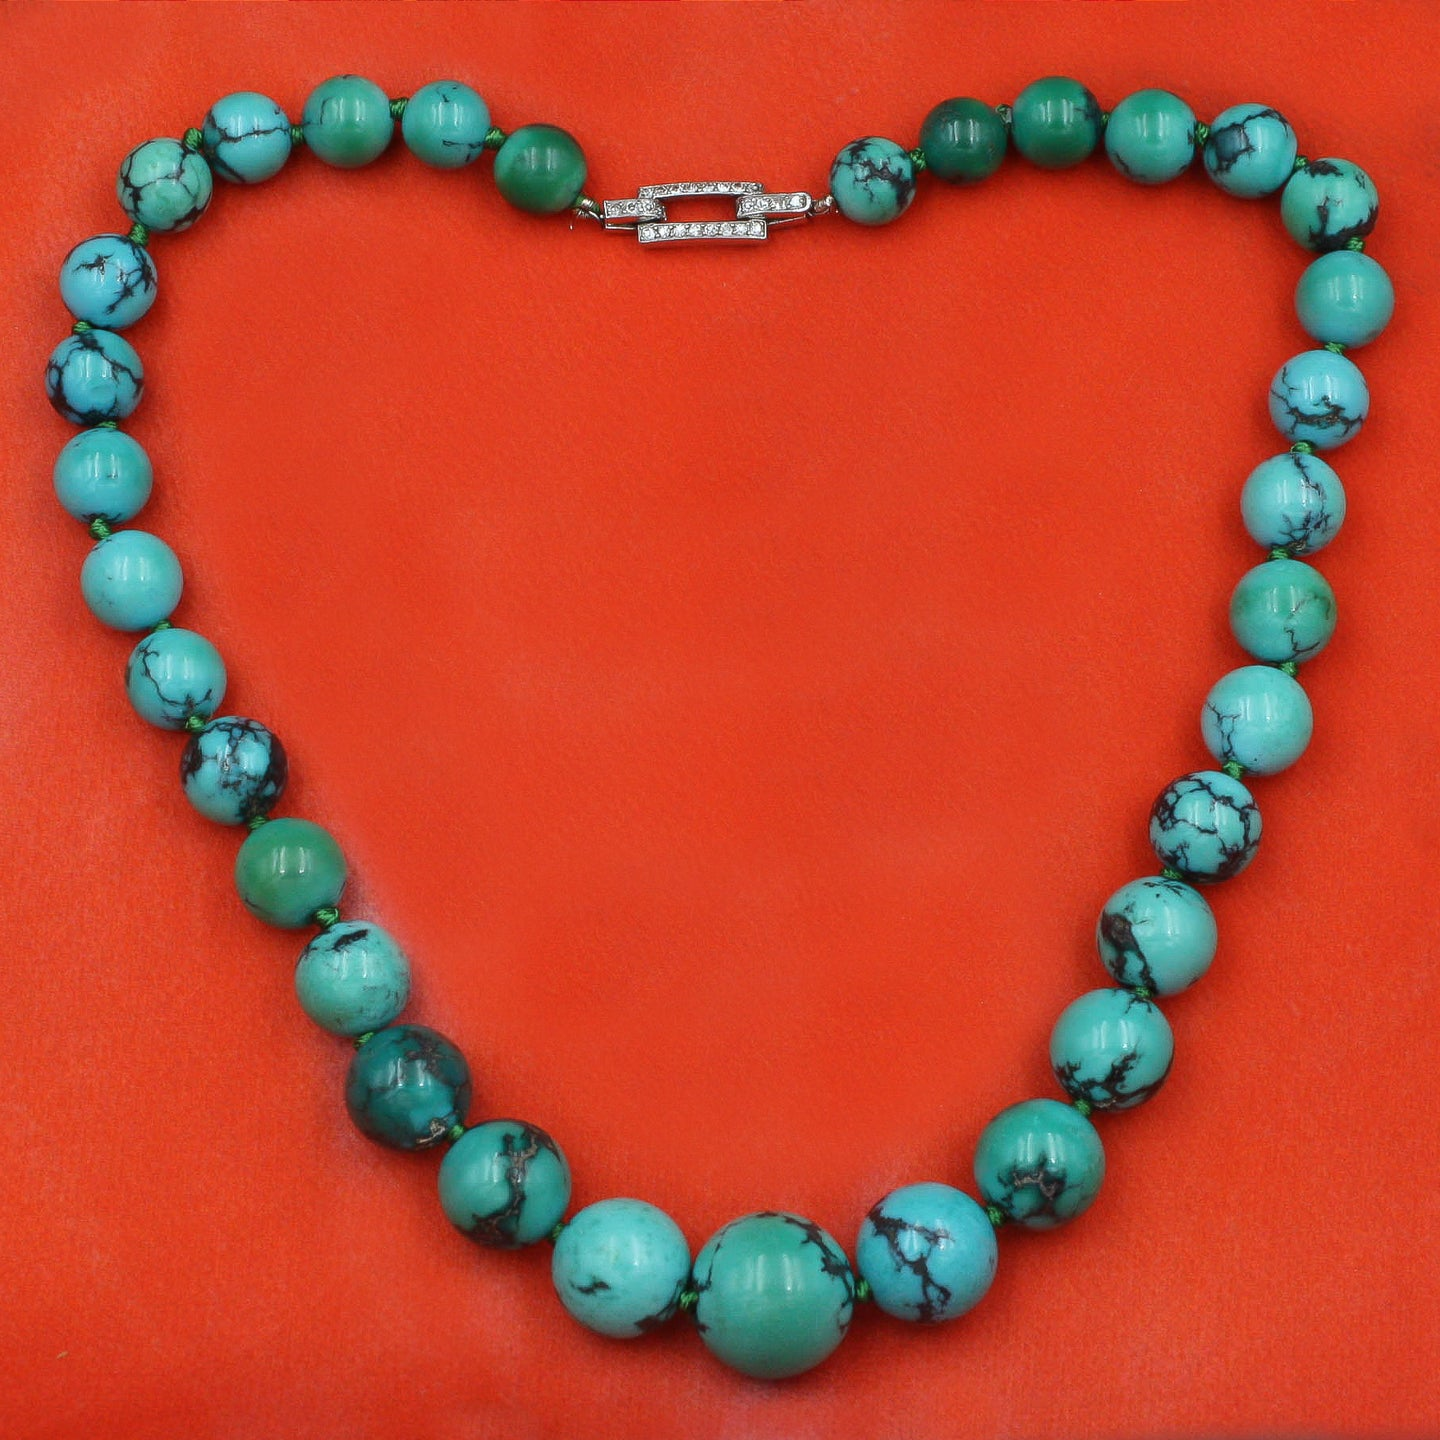 Spiderweb Turquoise Bead Necklace c1930